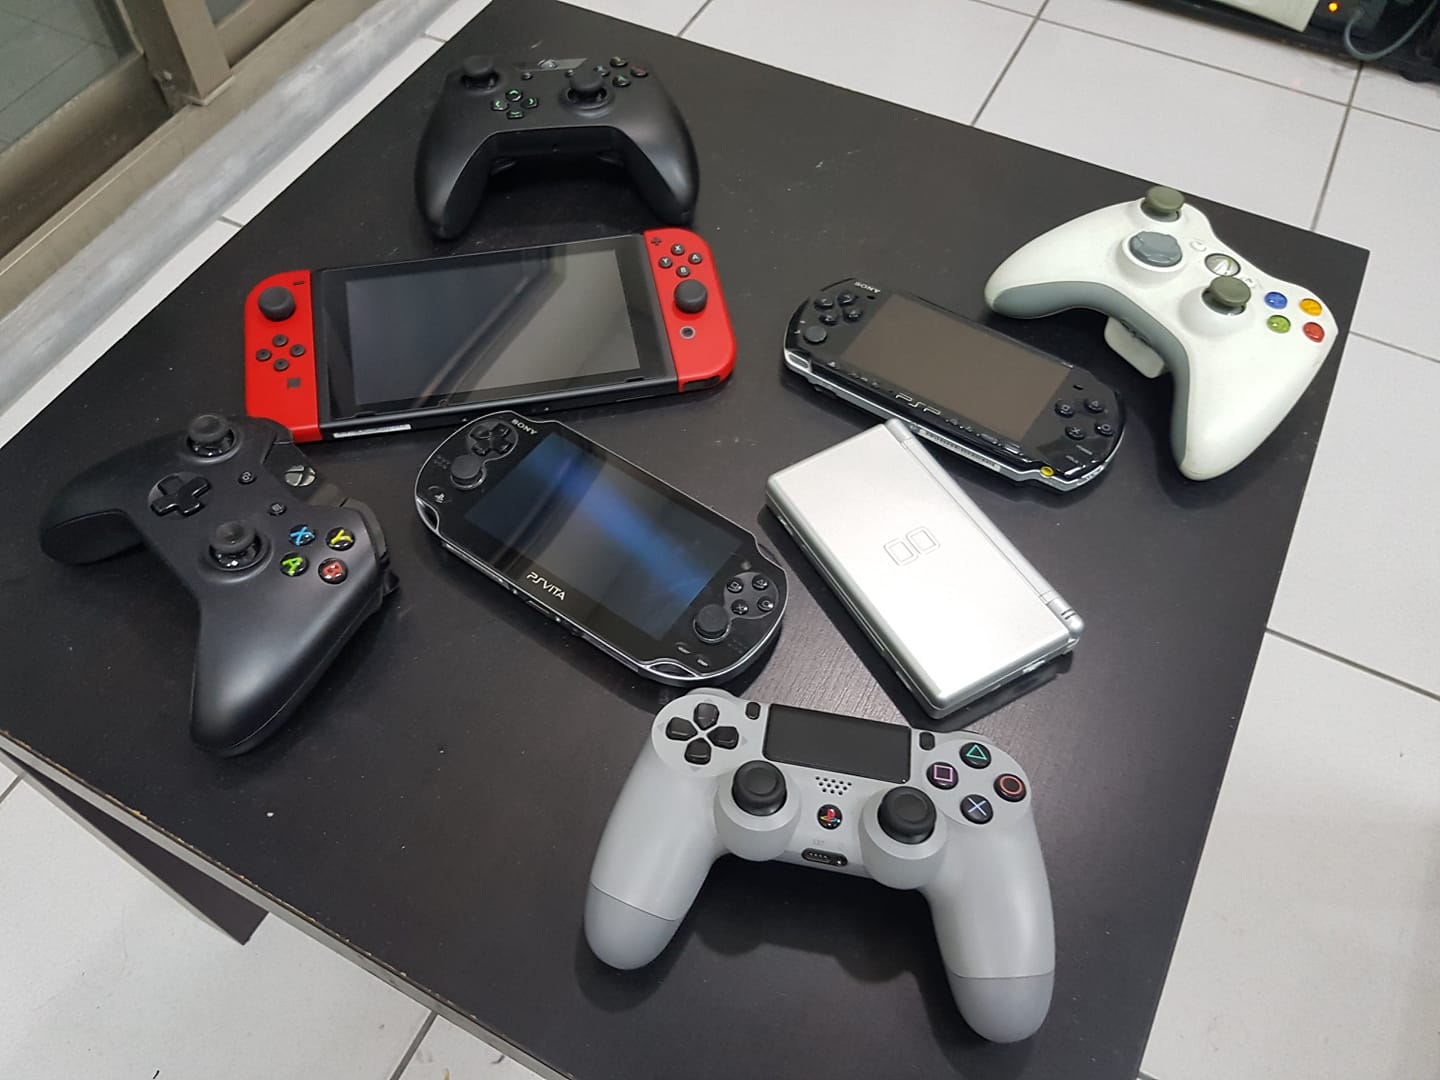 Video Game Consoles, Joystick, Video Games, Game Controllers, Product, Game, , Product design, Electronics, Design, game controller, Gadget, Home game console accessory, Joystick, Game controller, Electronic device, Technology, Video game accessory, Playstation accessory, Video game console, Playstation